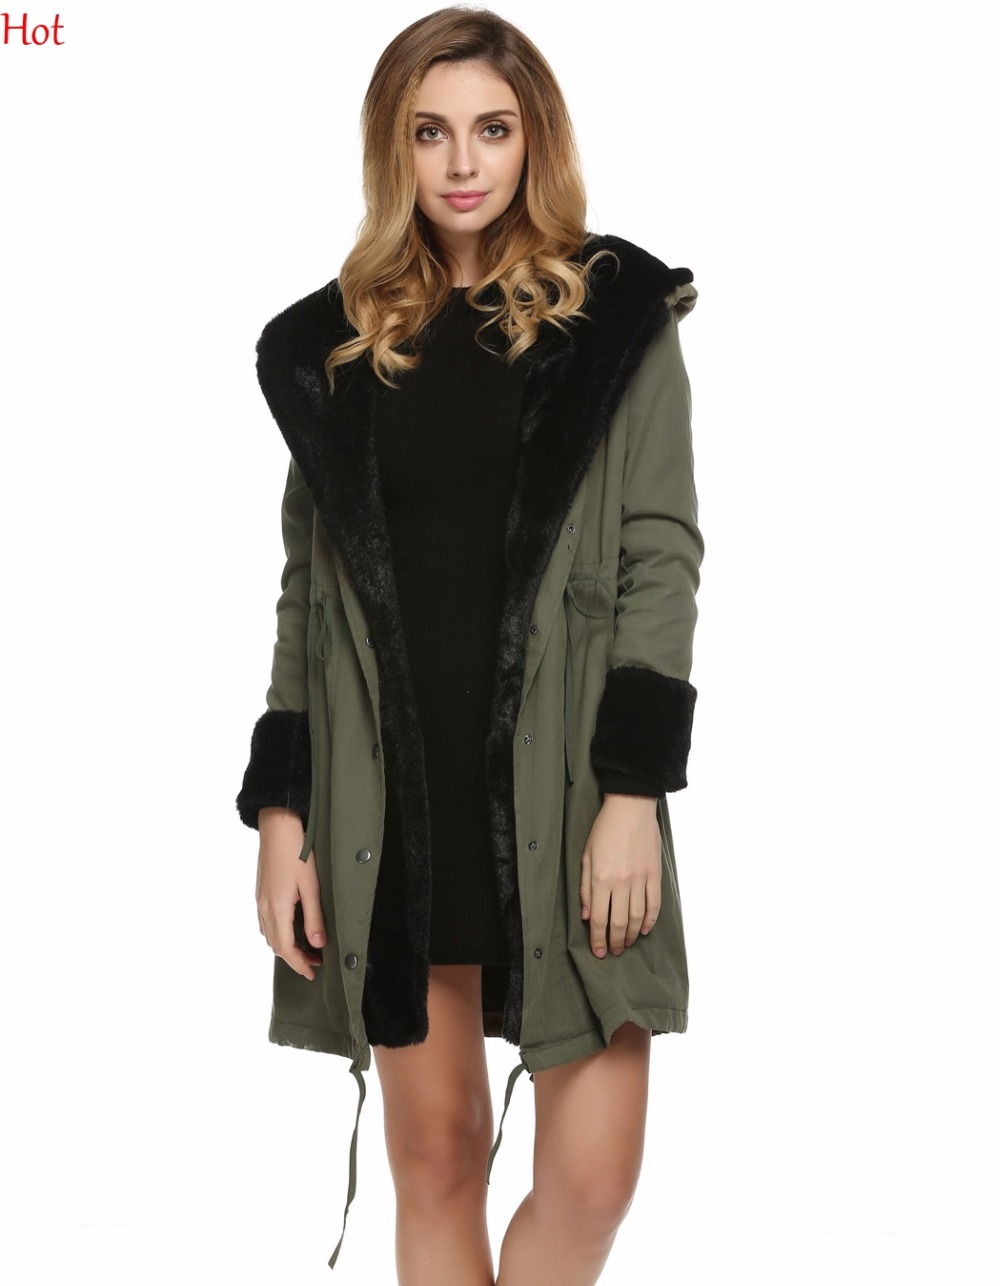 New Plus Size Fashion Women Faux Fur Coat Casual Hooded Parka Long Jacket Outwear Winter Clothing Warm Fur Hooded Coats SV028895 compatible for samsung ml 2850d 2851nd laser cartridge chip toner reset chip ml 2850